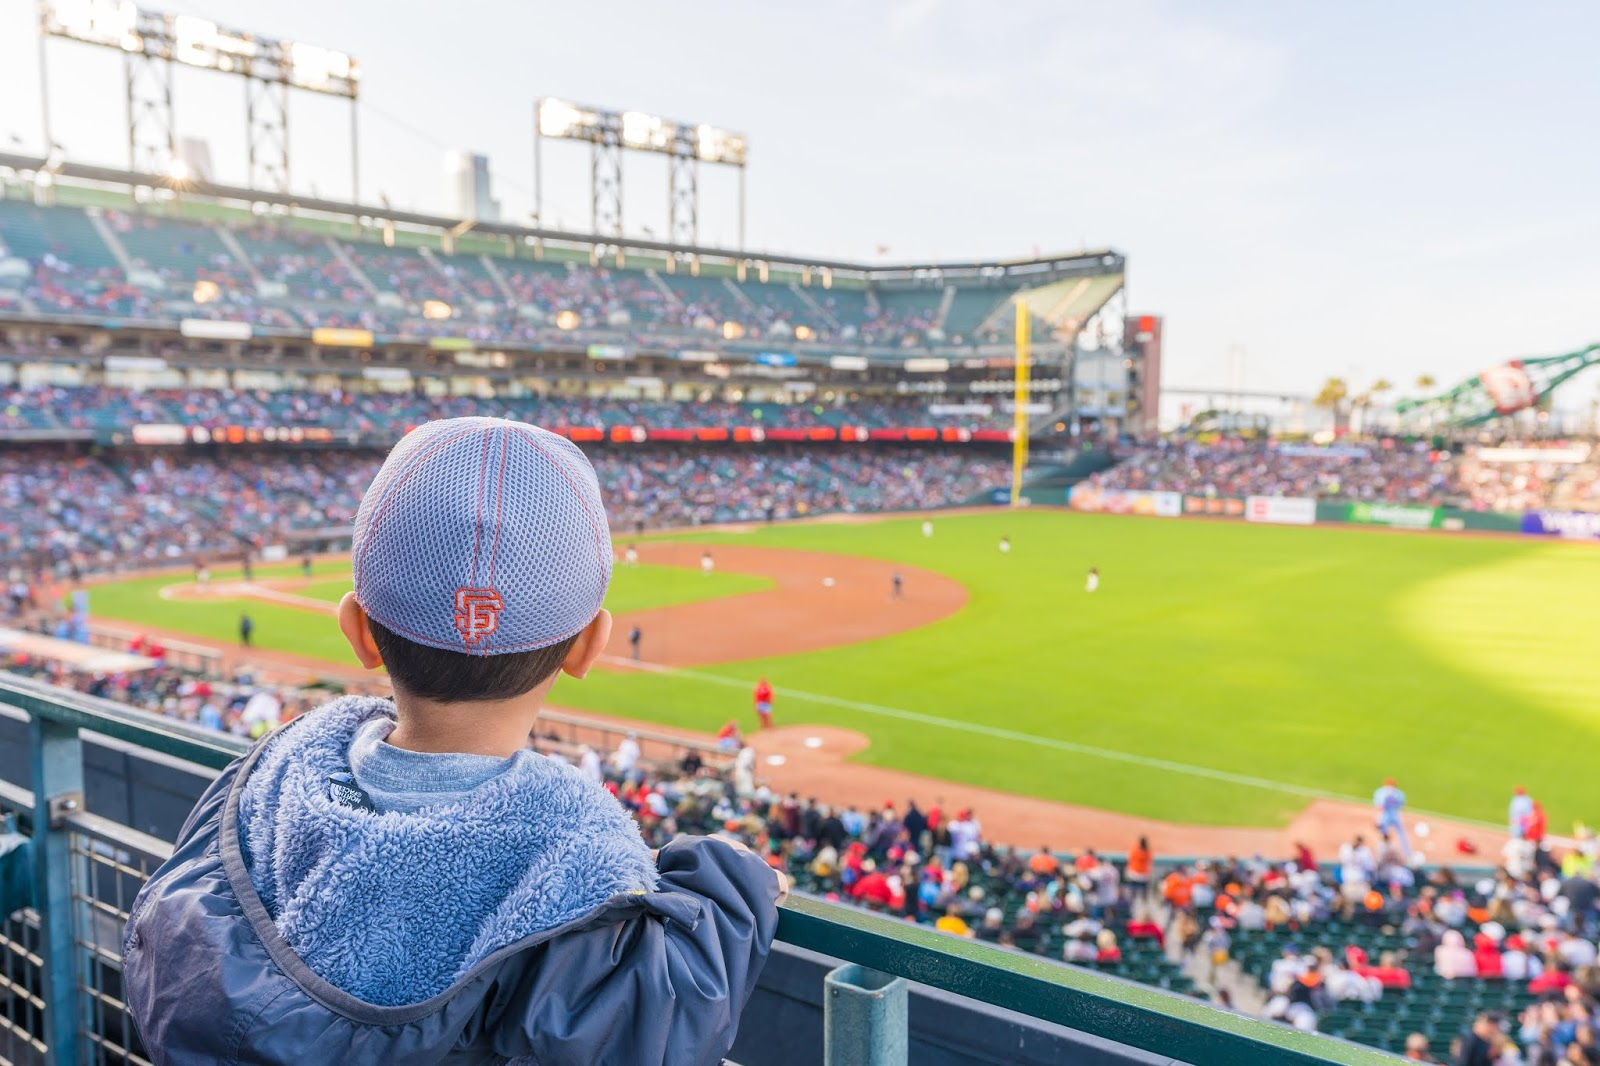 The Premium Experience at Oracle Park: A Look at the San ... on giants arena seating, giants jets stadium map, giants stadium seating numbers, giants stadium seating plan, giants stadium seating chart, giants stadium seating view, giants tailgating, giants stadium seating vip seats, giants parking map, giants merchandise, giants spring training tickets, giants at stadium view from my seat, giants schedule,